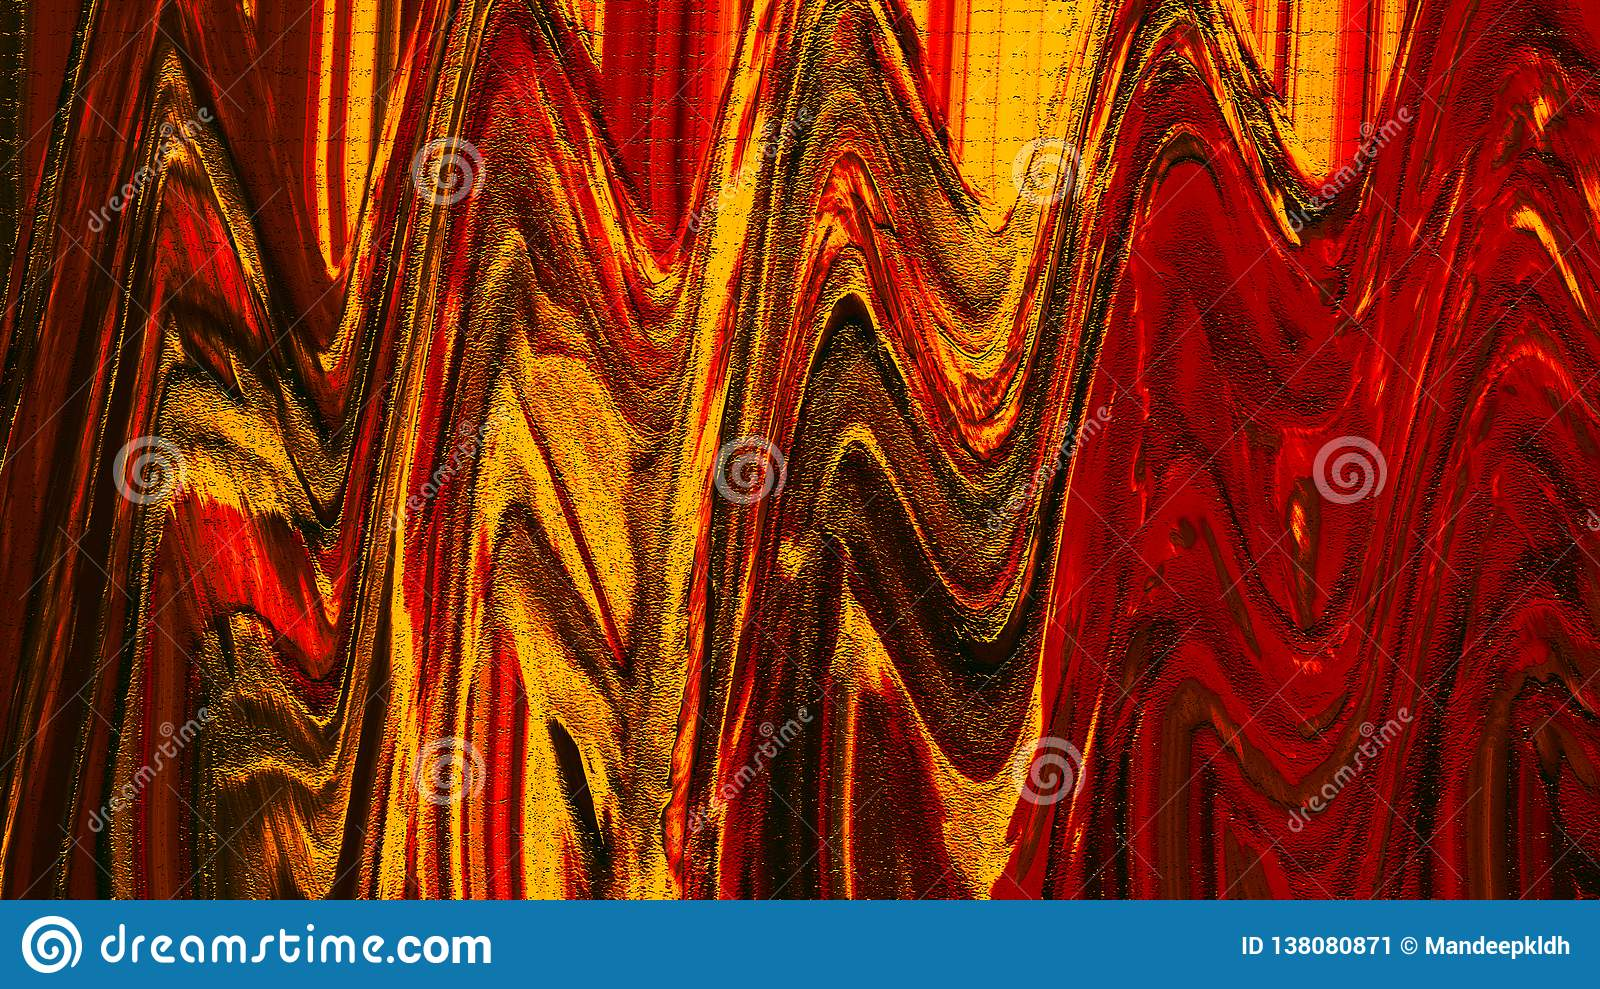 Creative abstract hand painted background. Acrylic painting strokes on canvas. Modern Art.